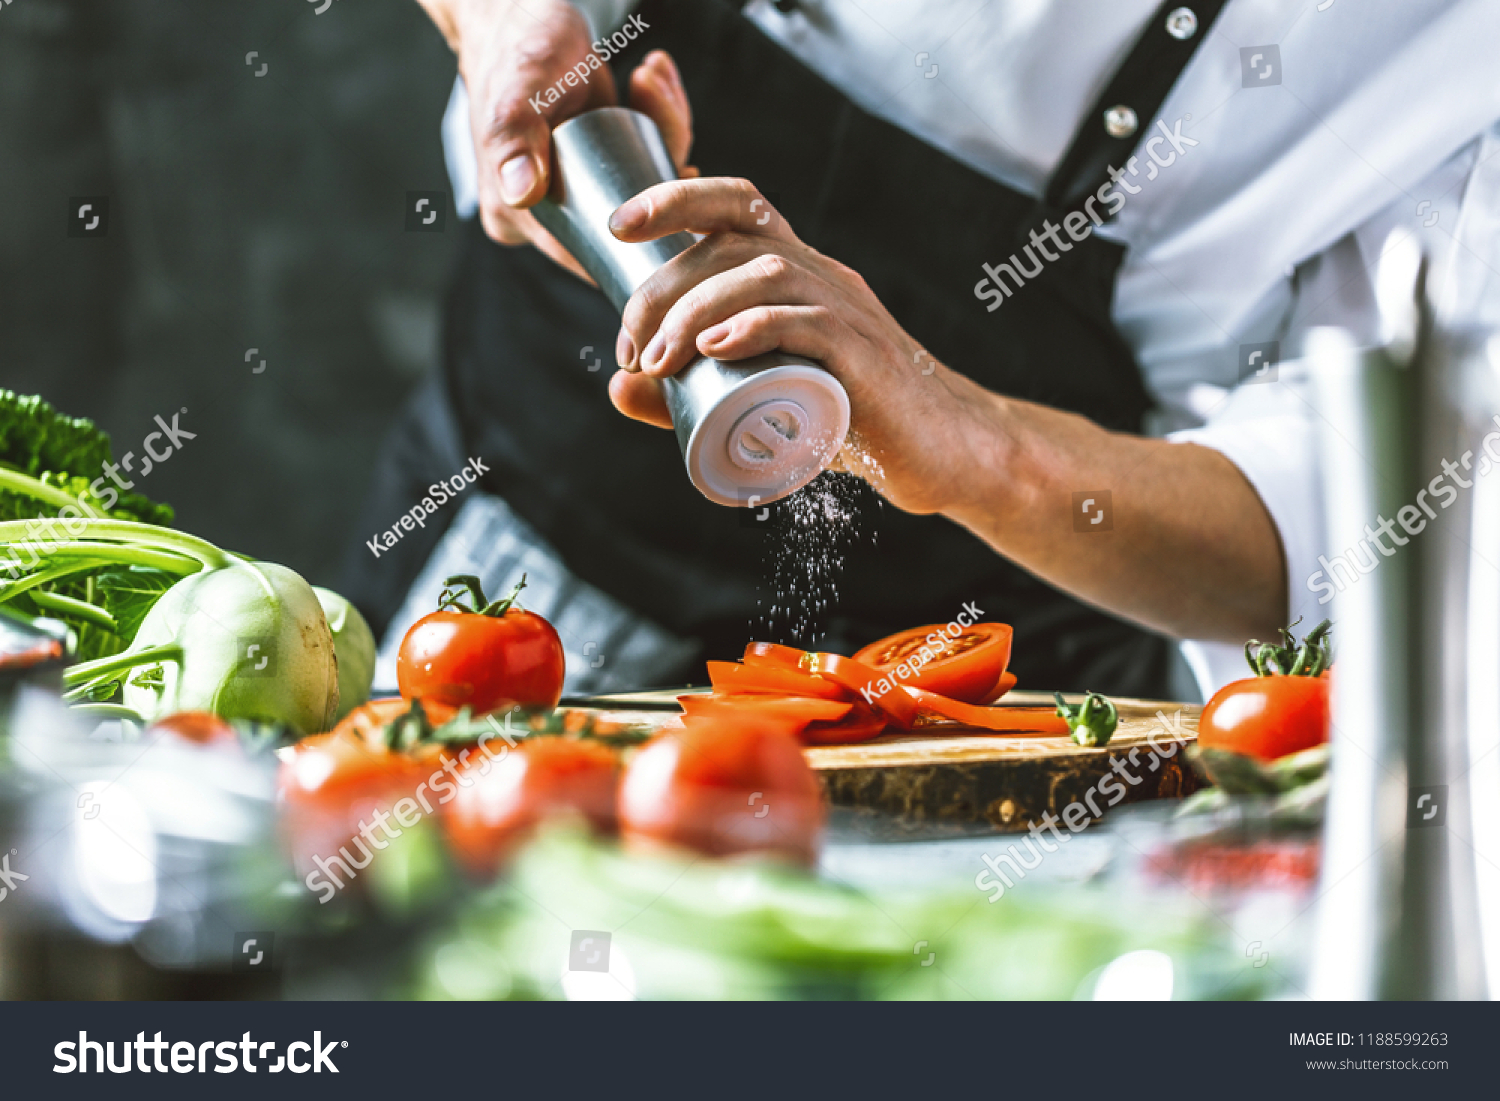 Chef cook preparing vegetables in his kitchen. #1188599263